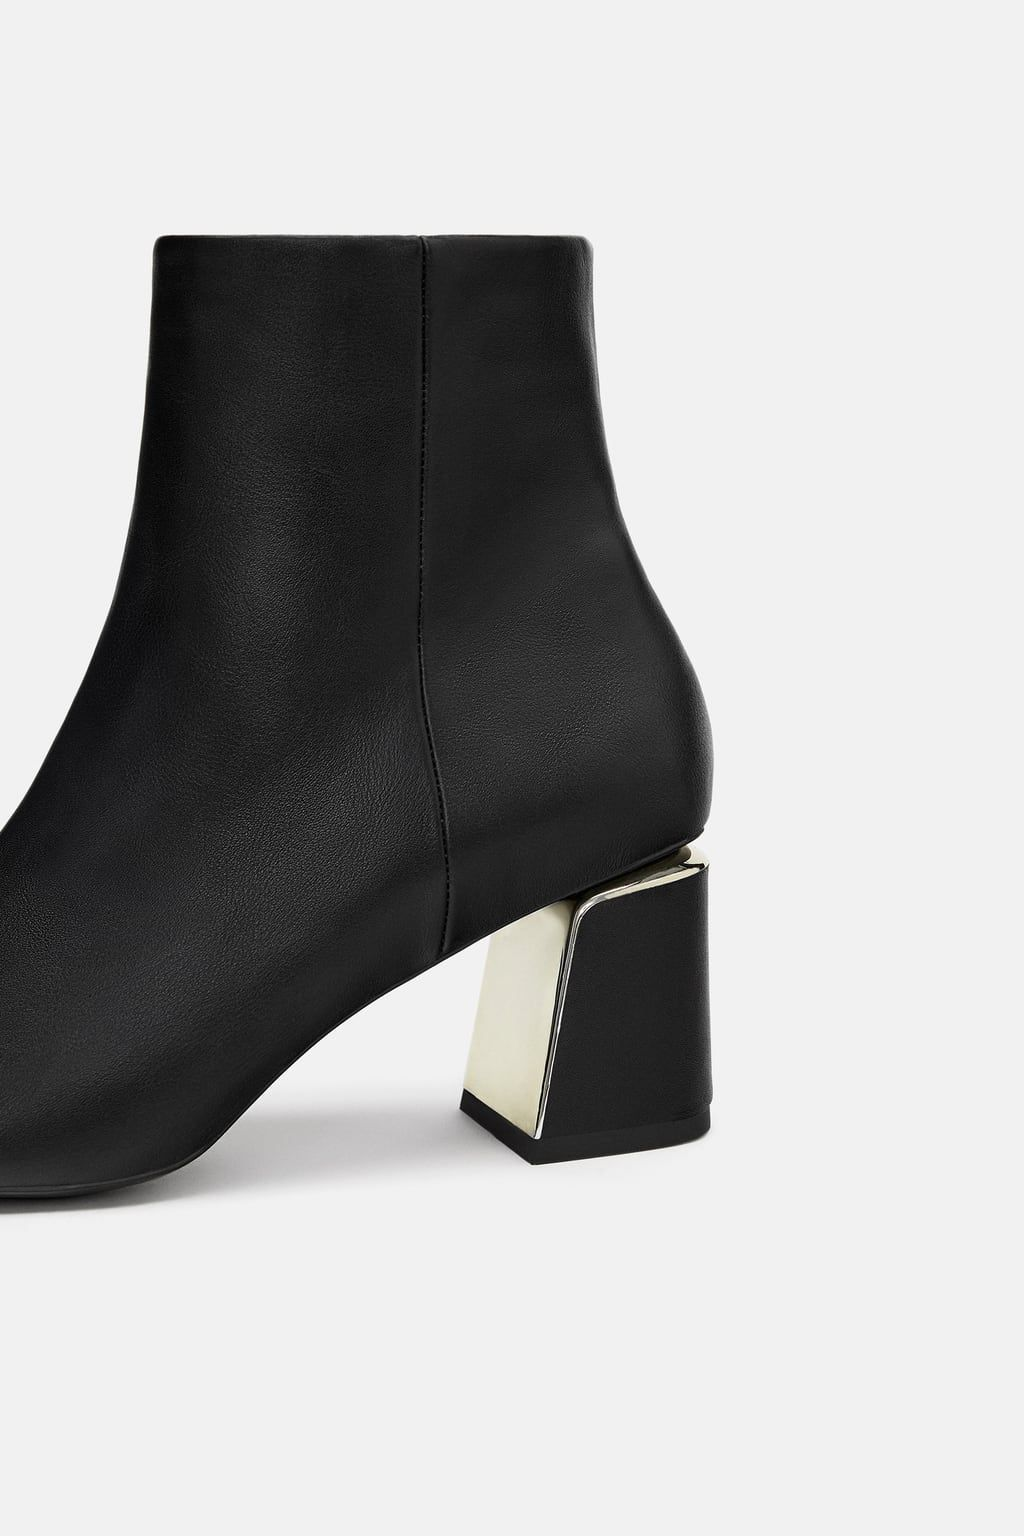 Boots, Heels, High heel boots ankle